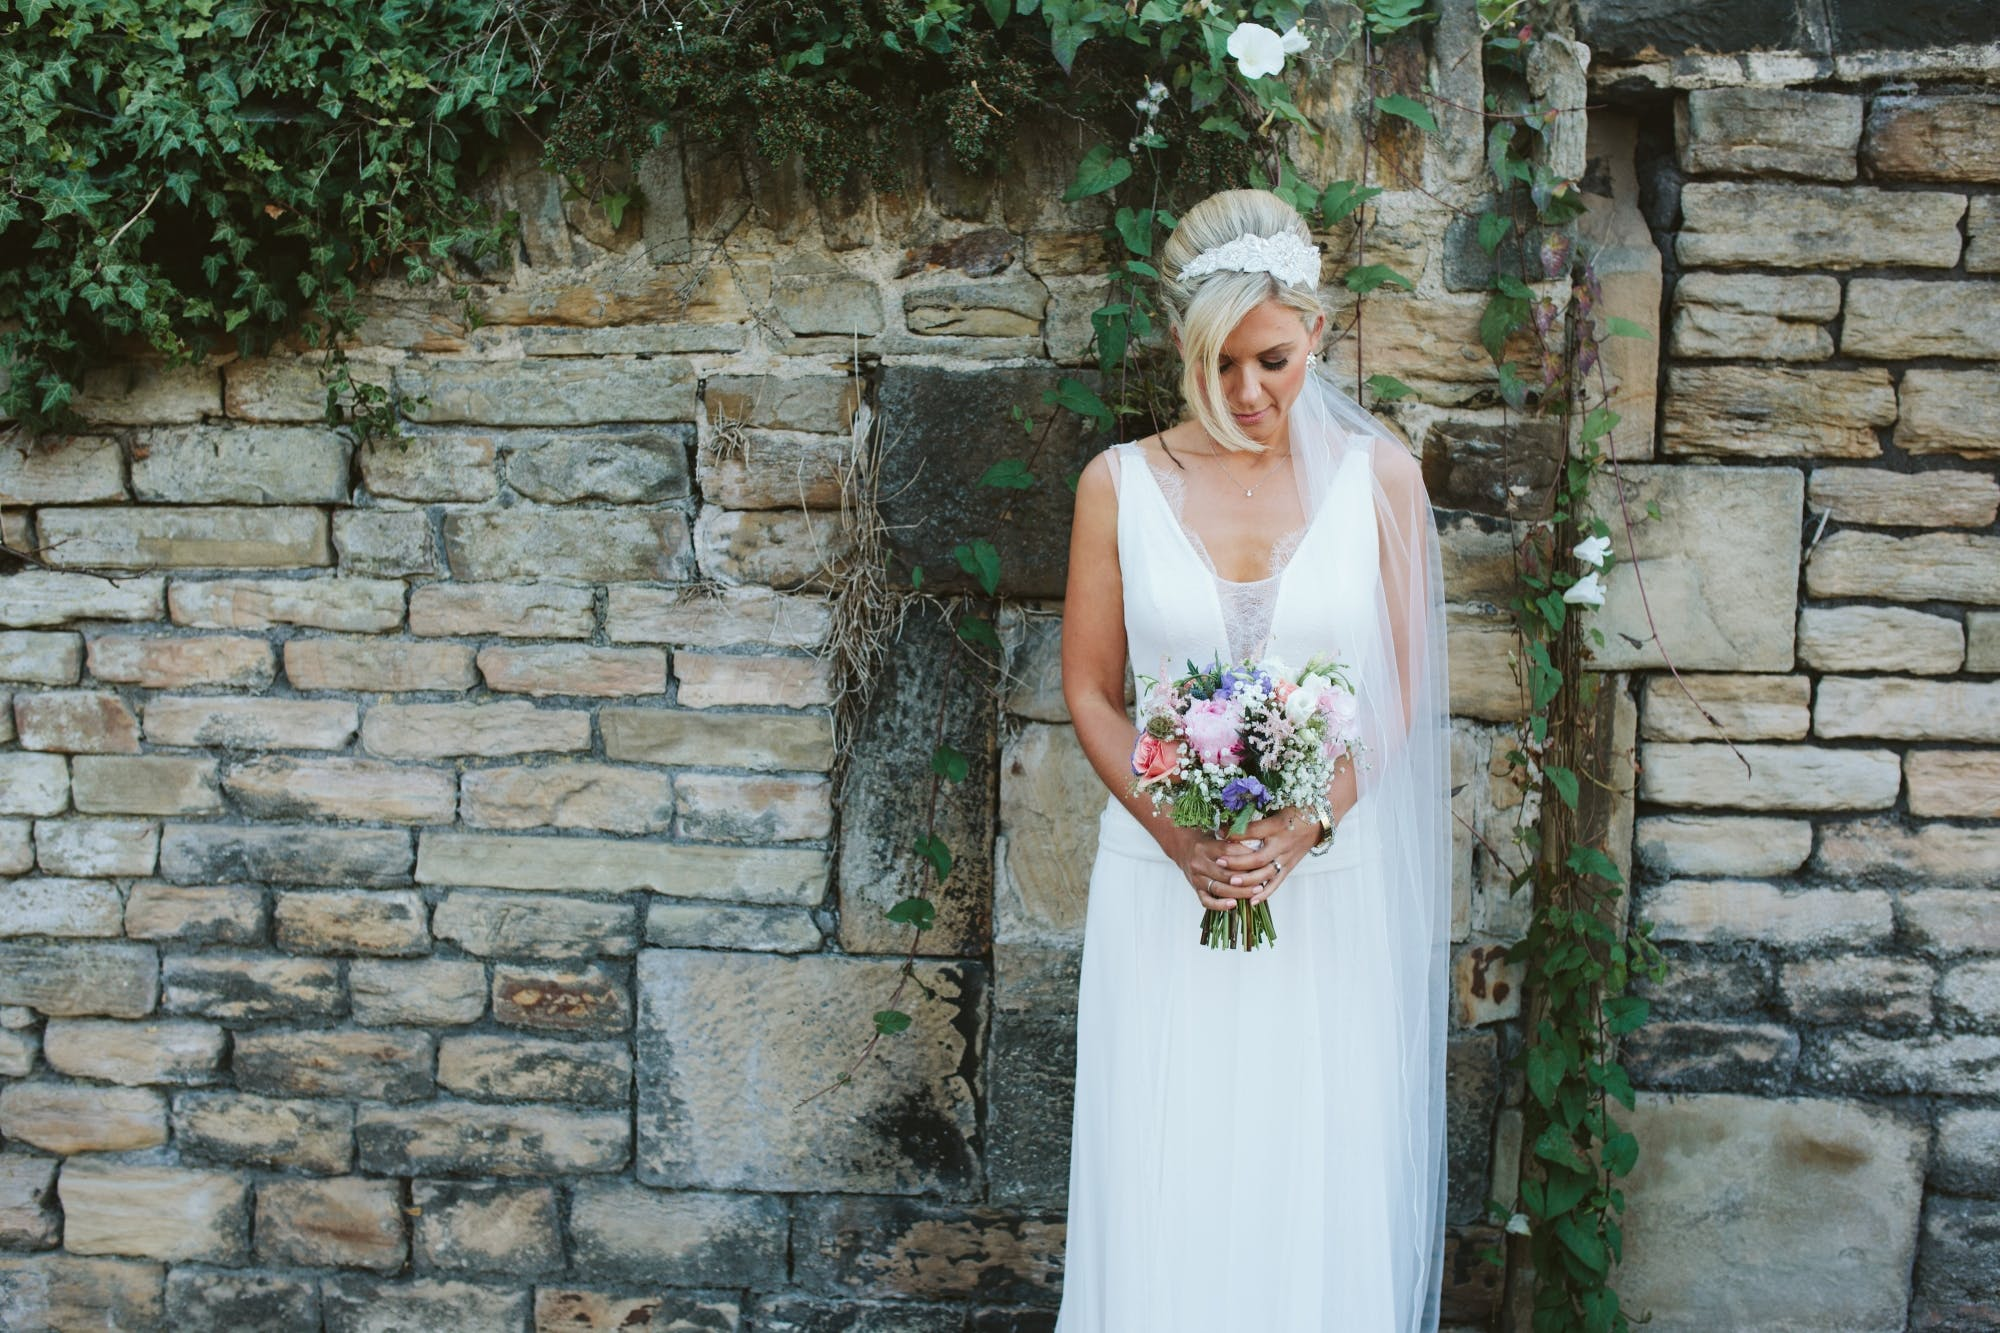 Our bohemian style bride Emma looking effortlessly beautiful in her dress 'Daphne' by Rembo Styling